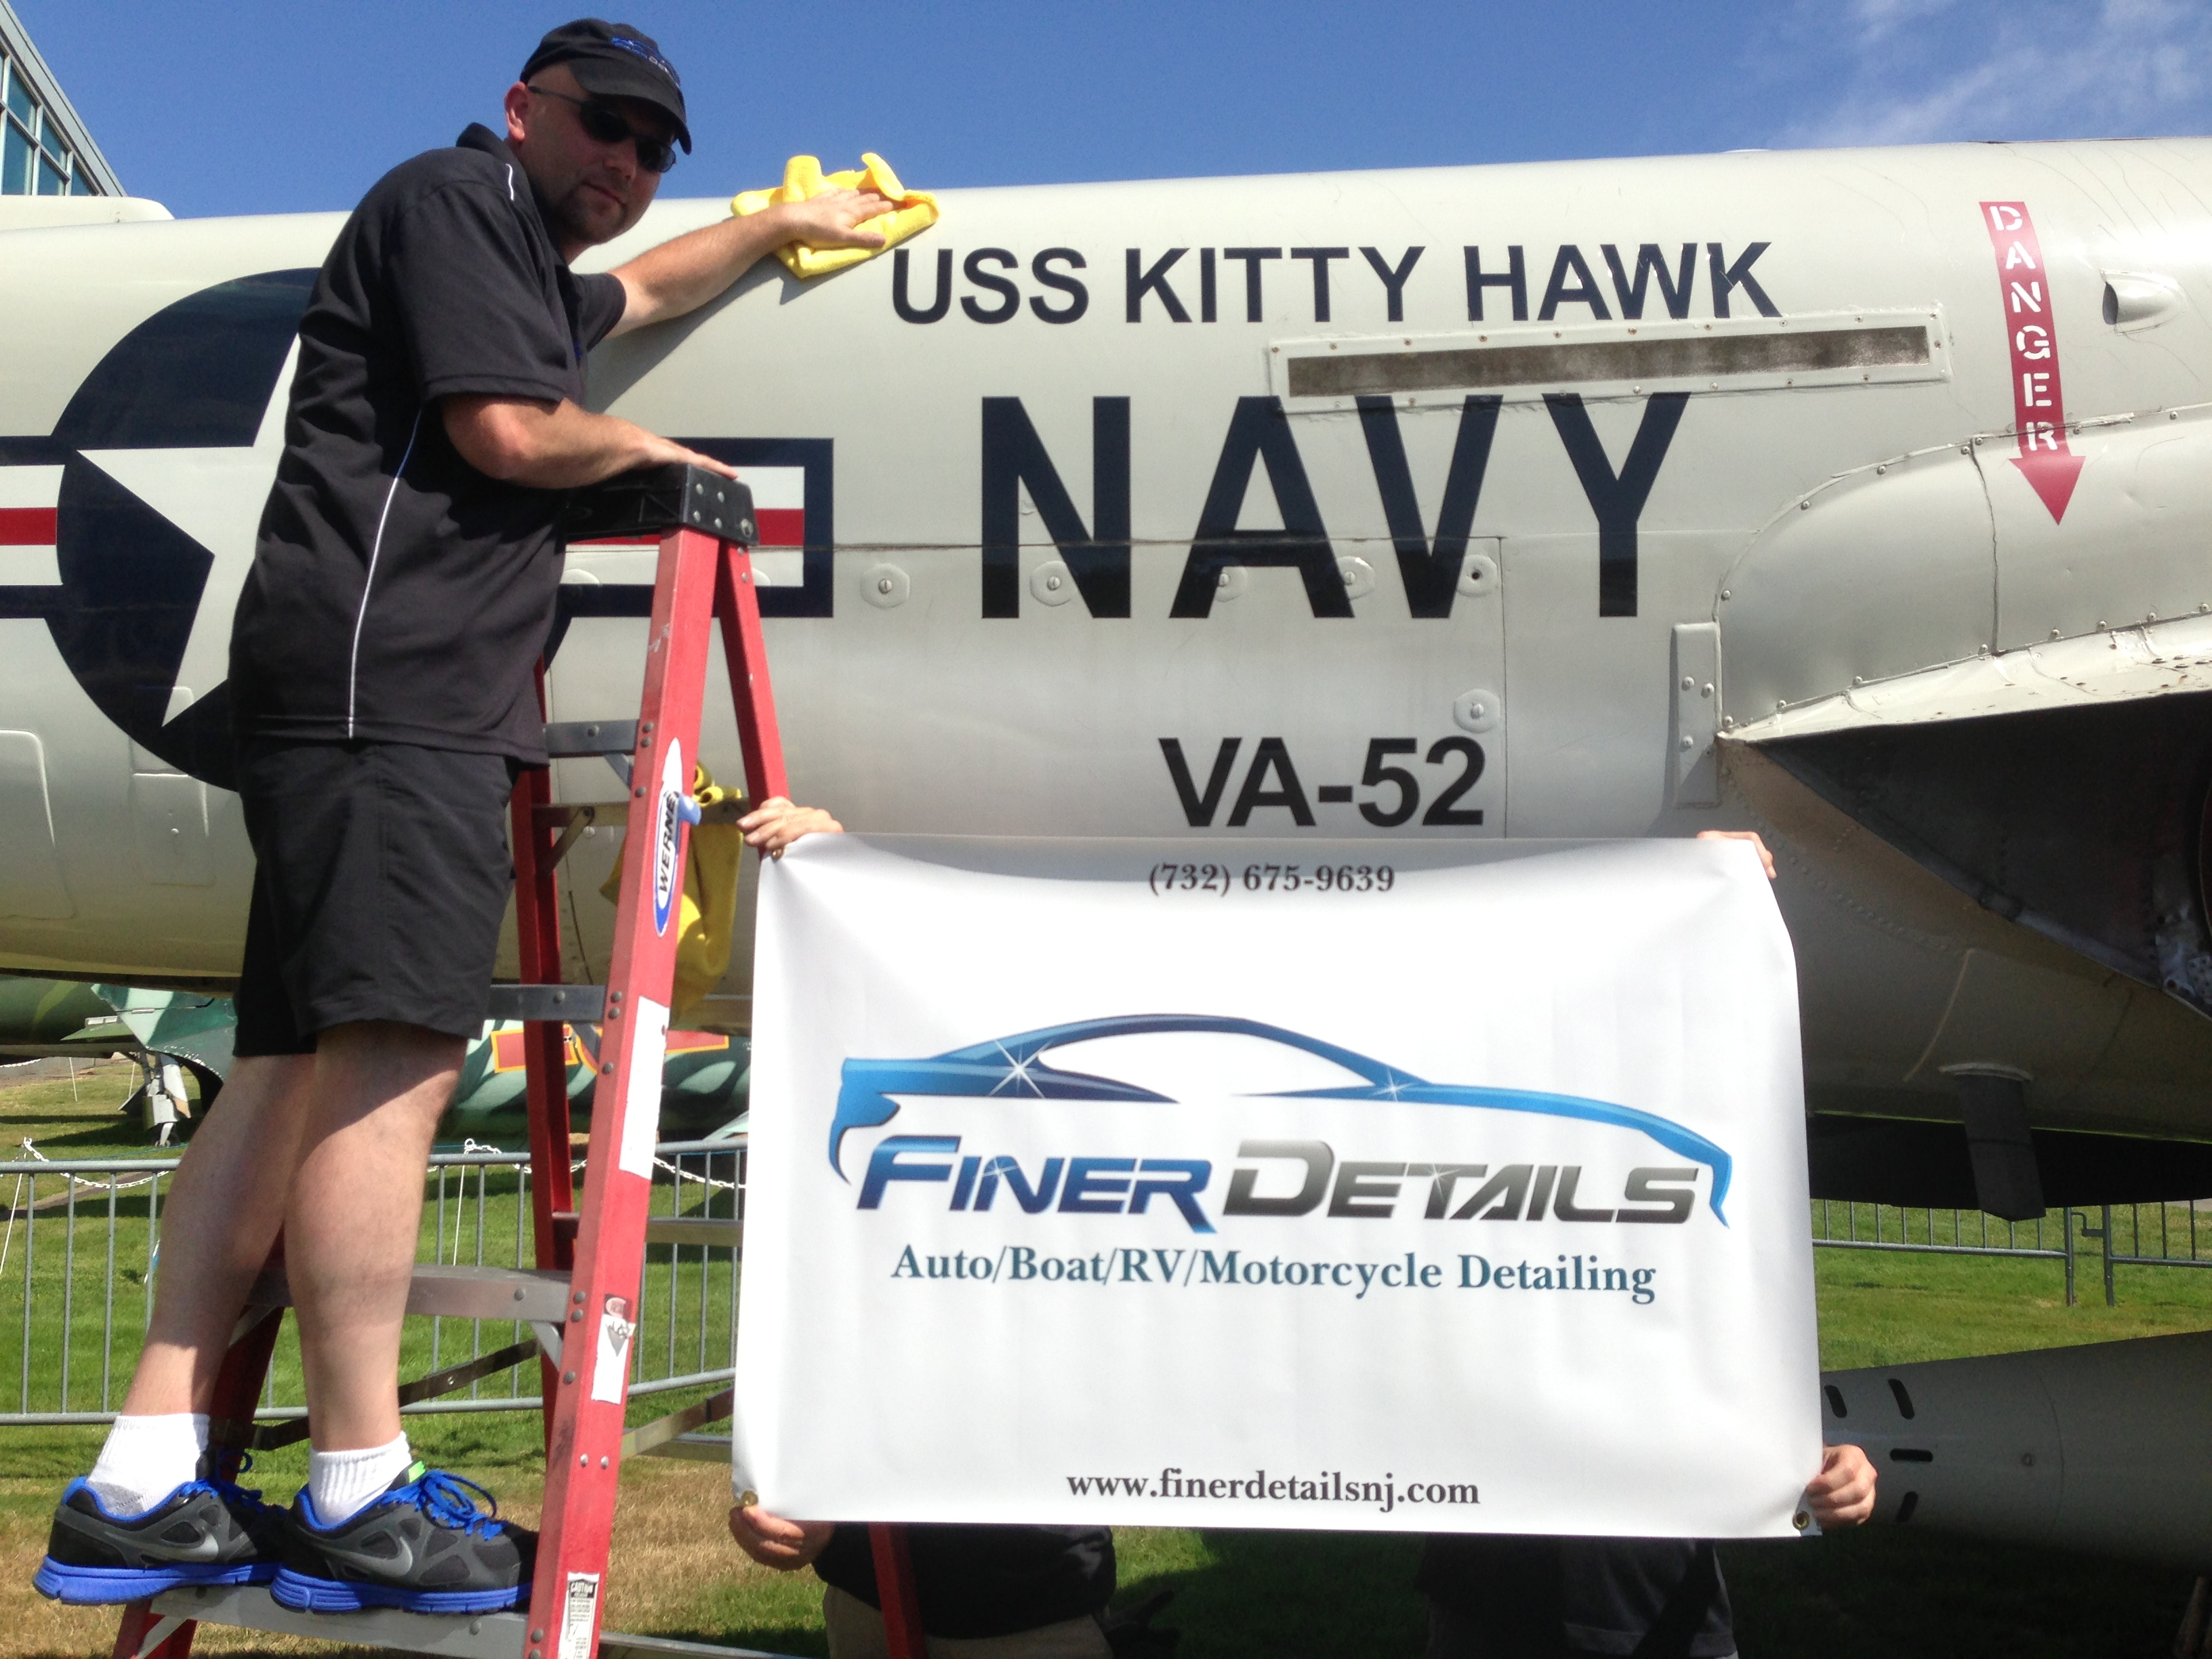 Kitty Hawk Finer Details.JPG